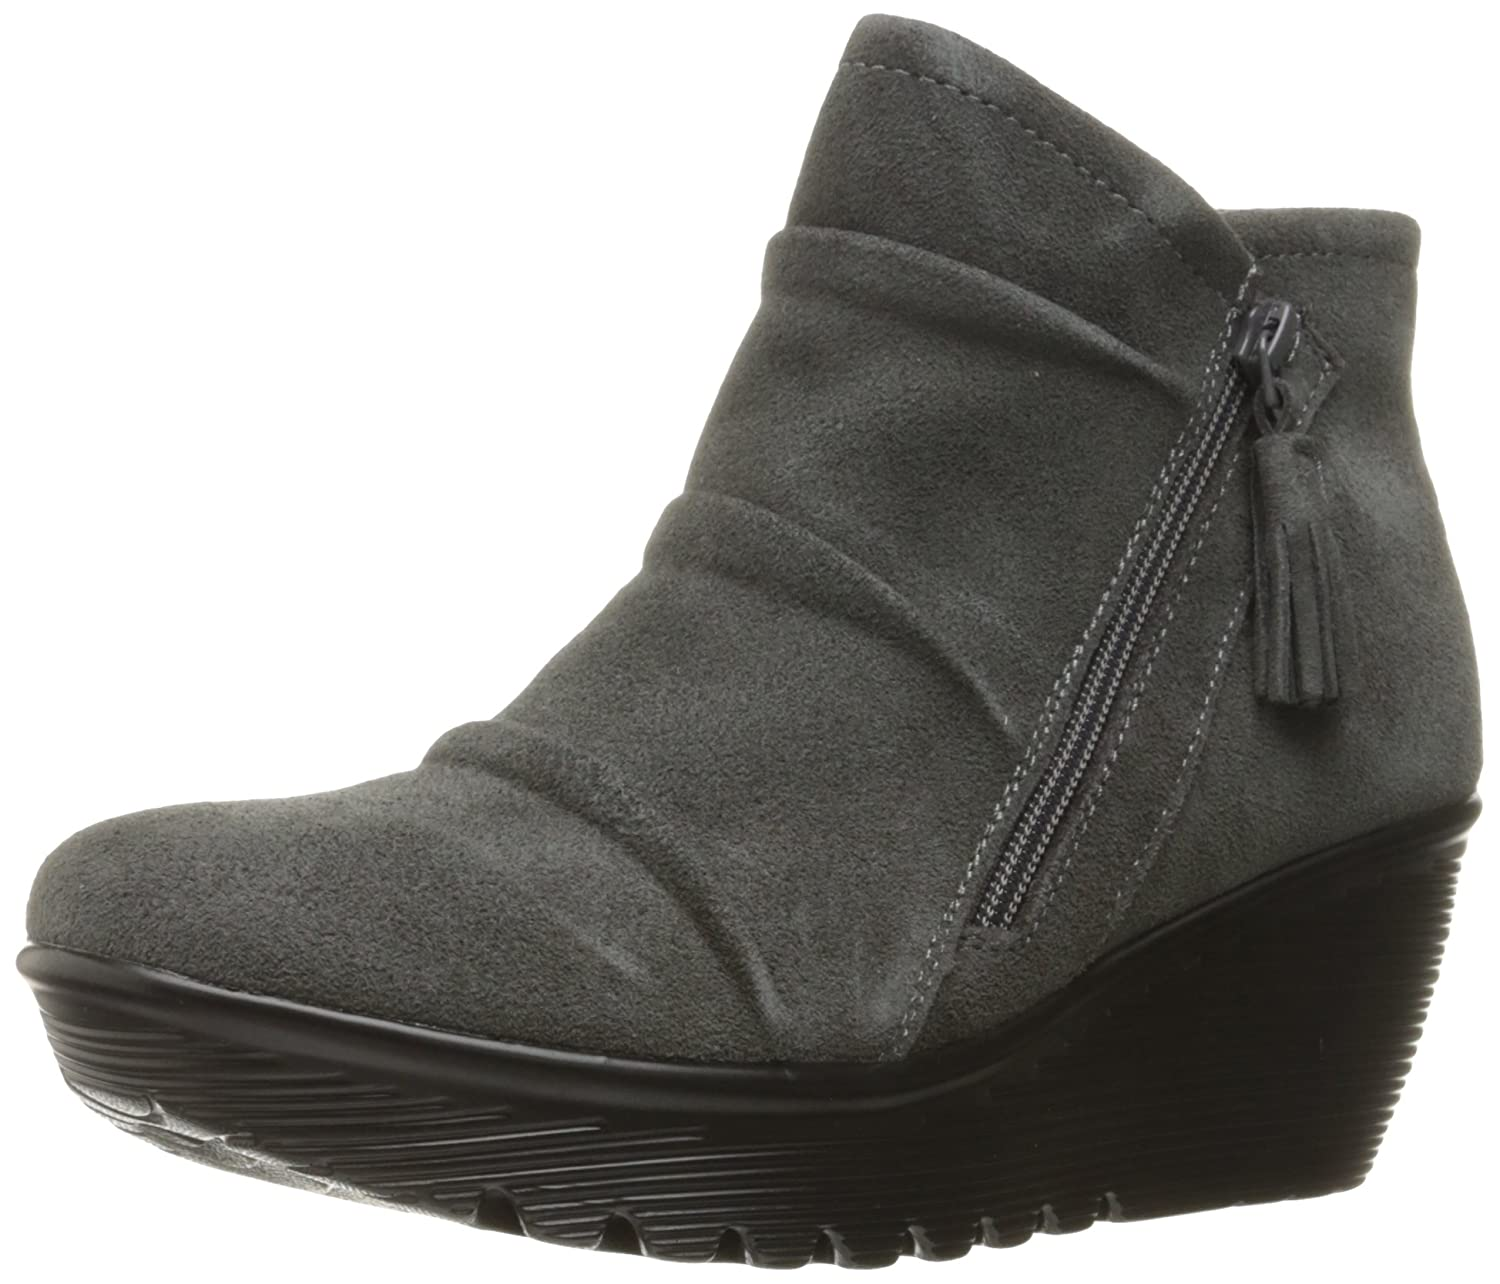 Skechers Womens Parallel-Triple Threat Ankle Bootie  5.5 B(M) US|Charcoal Suede